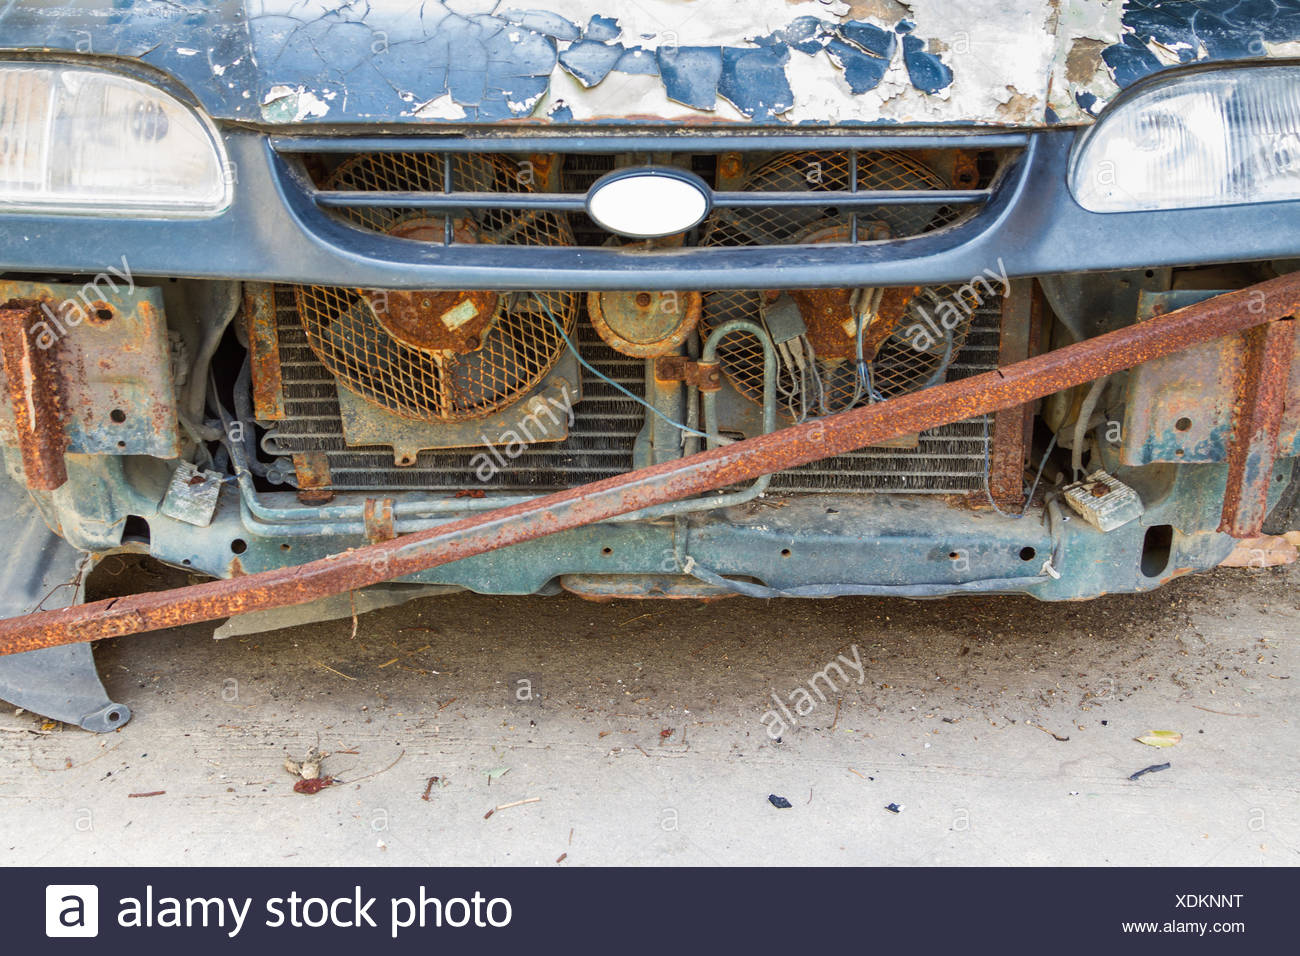 The old car background. - Stock Image